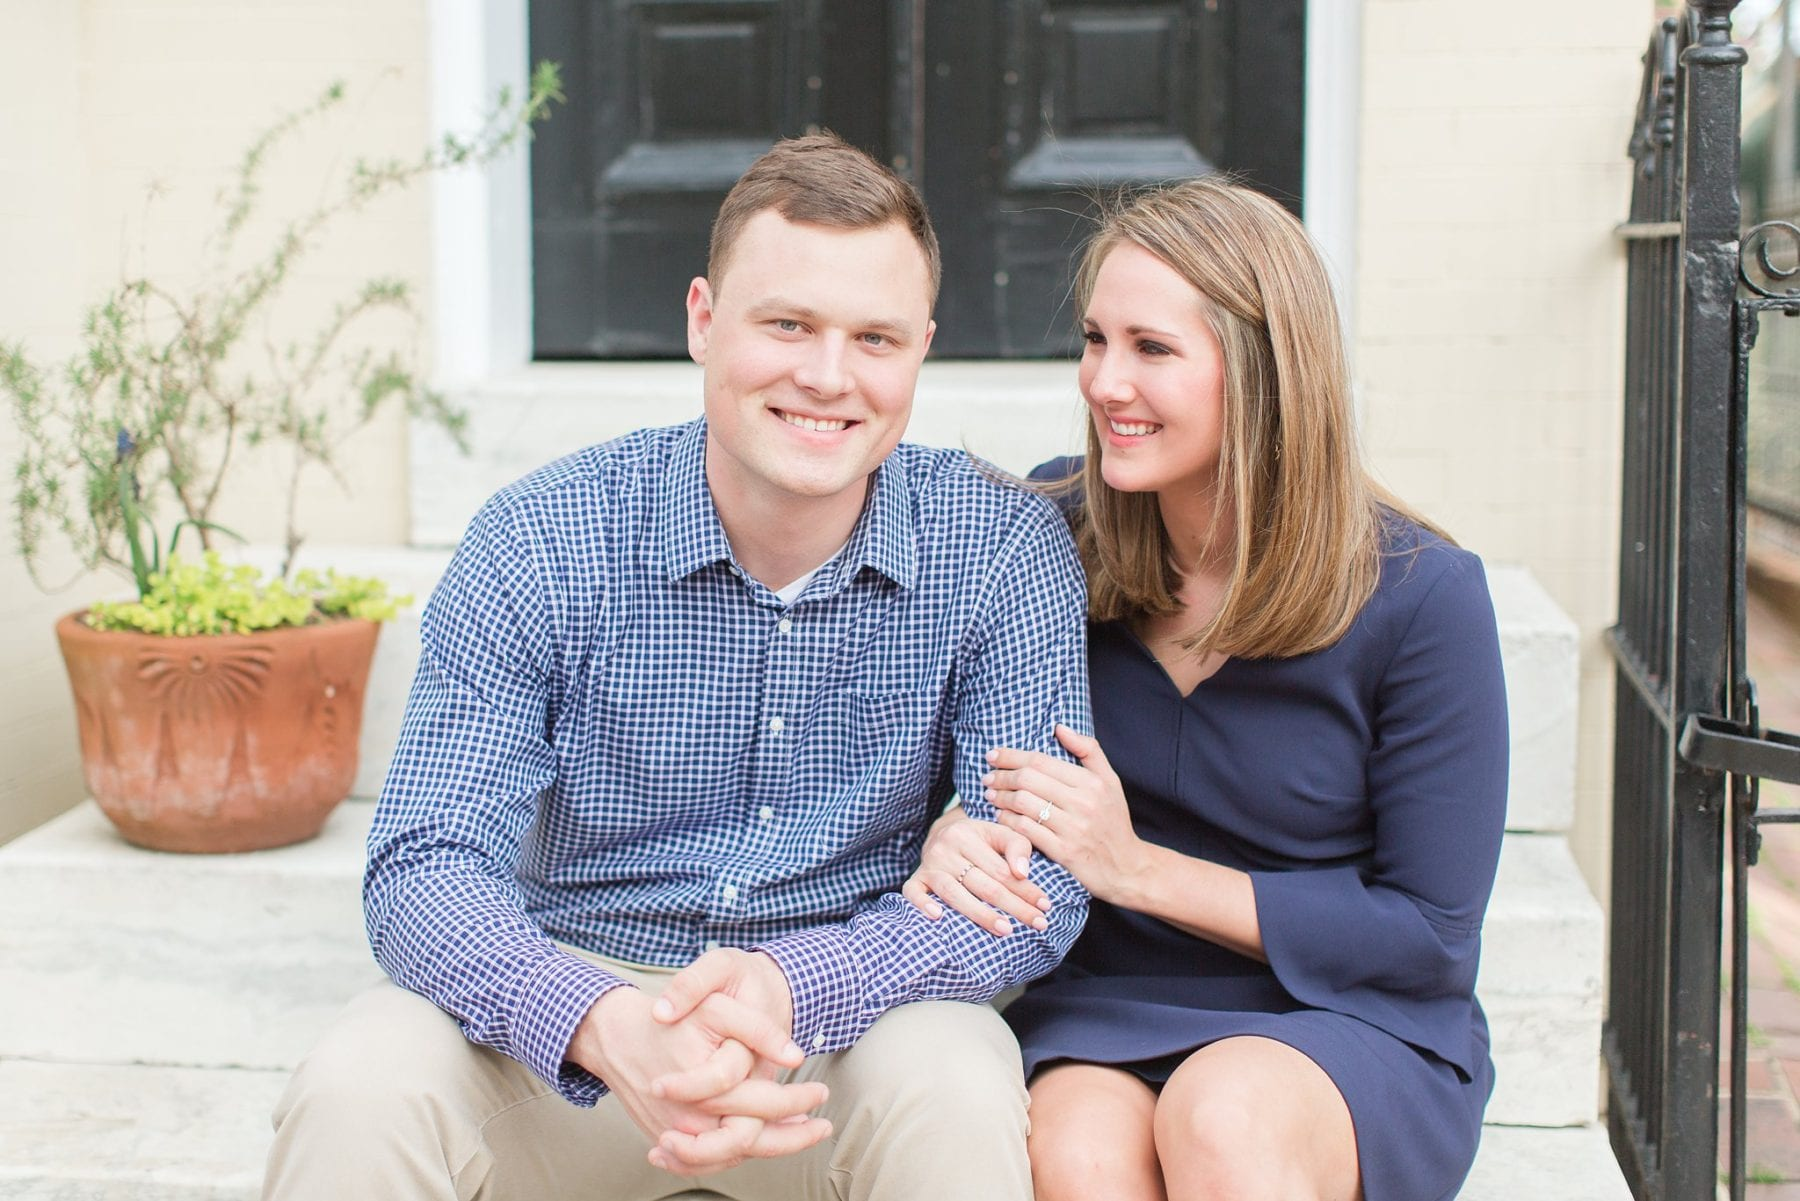 Springtime Old Town Alexandria Engagement Session Matt & Maxie Megan Kelsey Photography-106.jpg